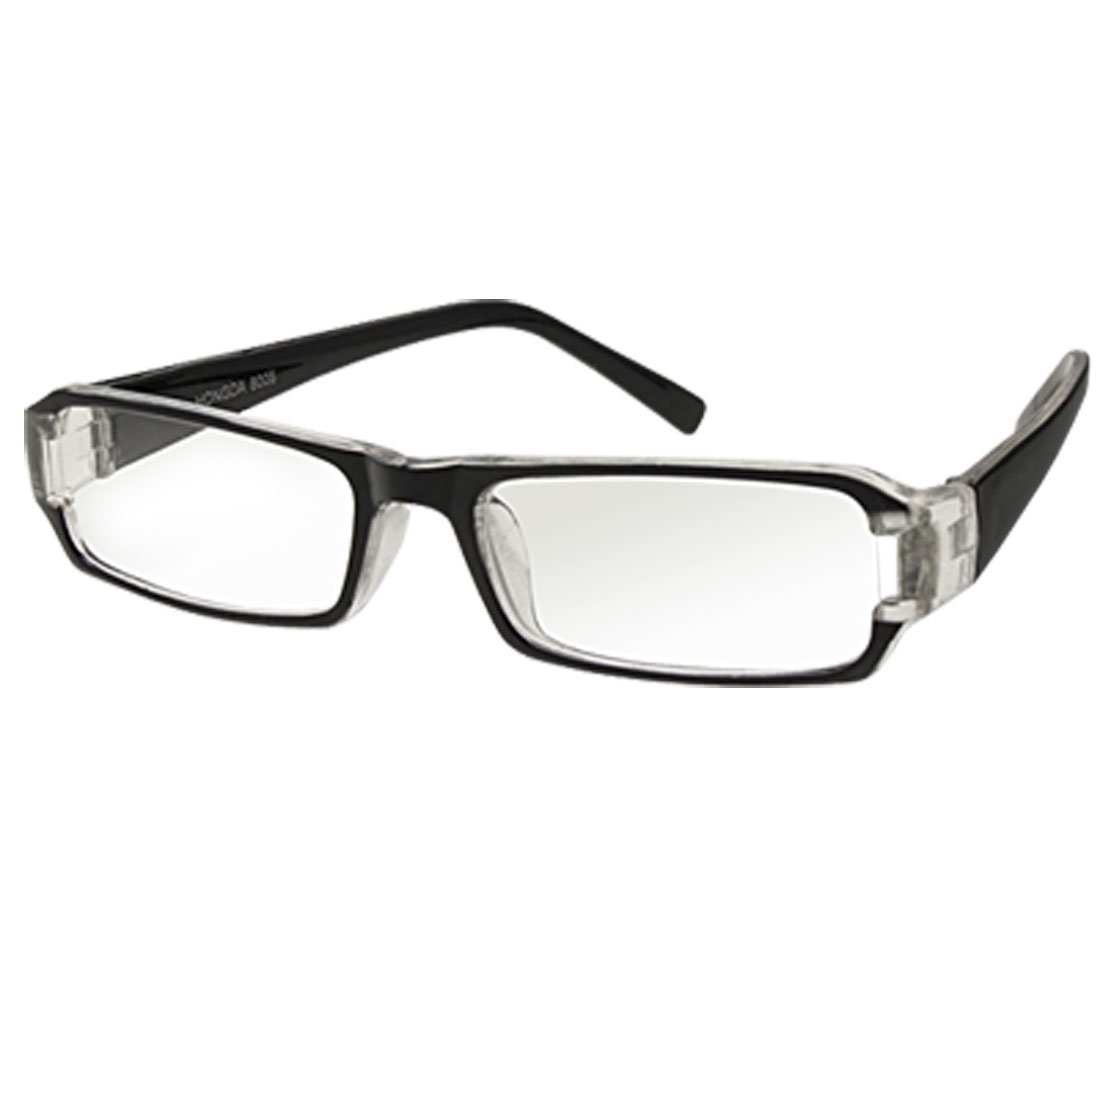 Black Frame Clear Lens Cool Glasses for Young People